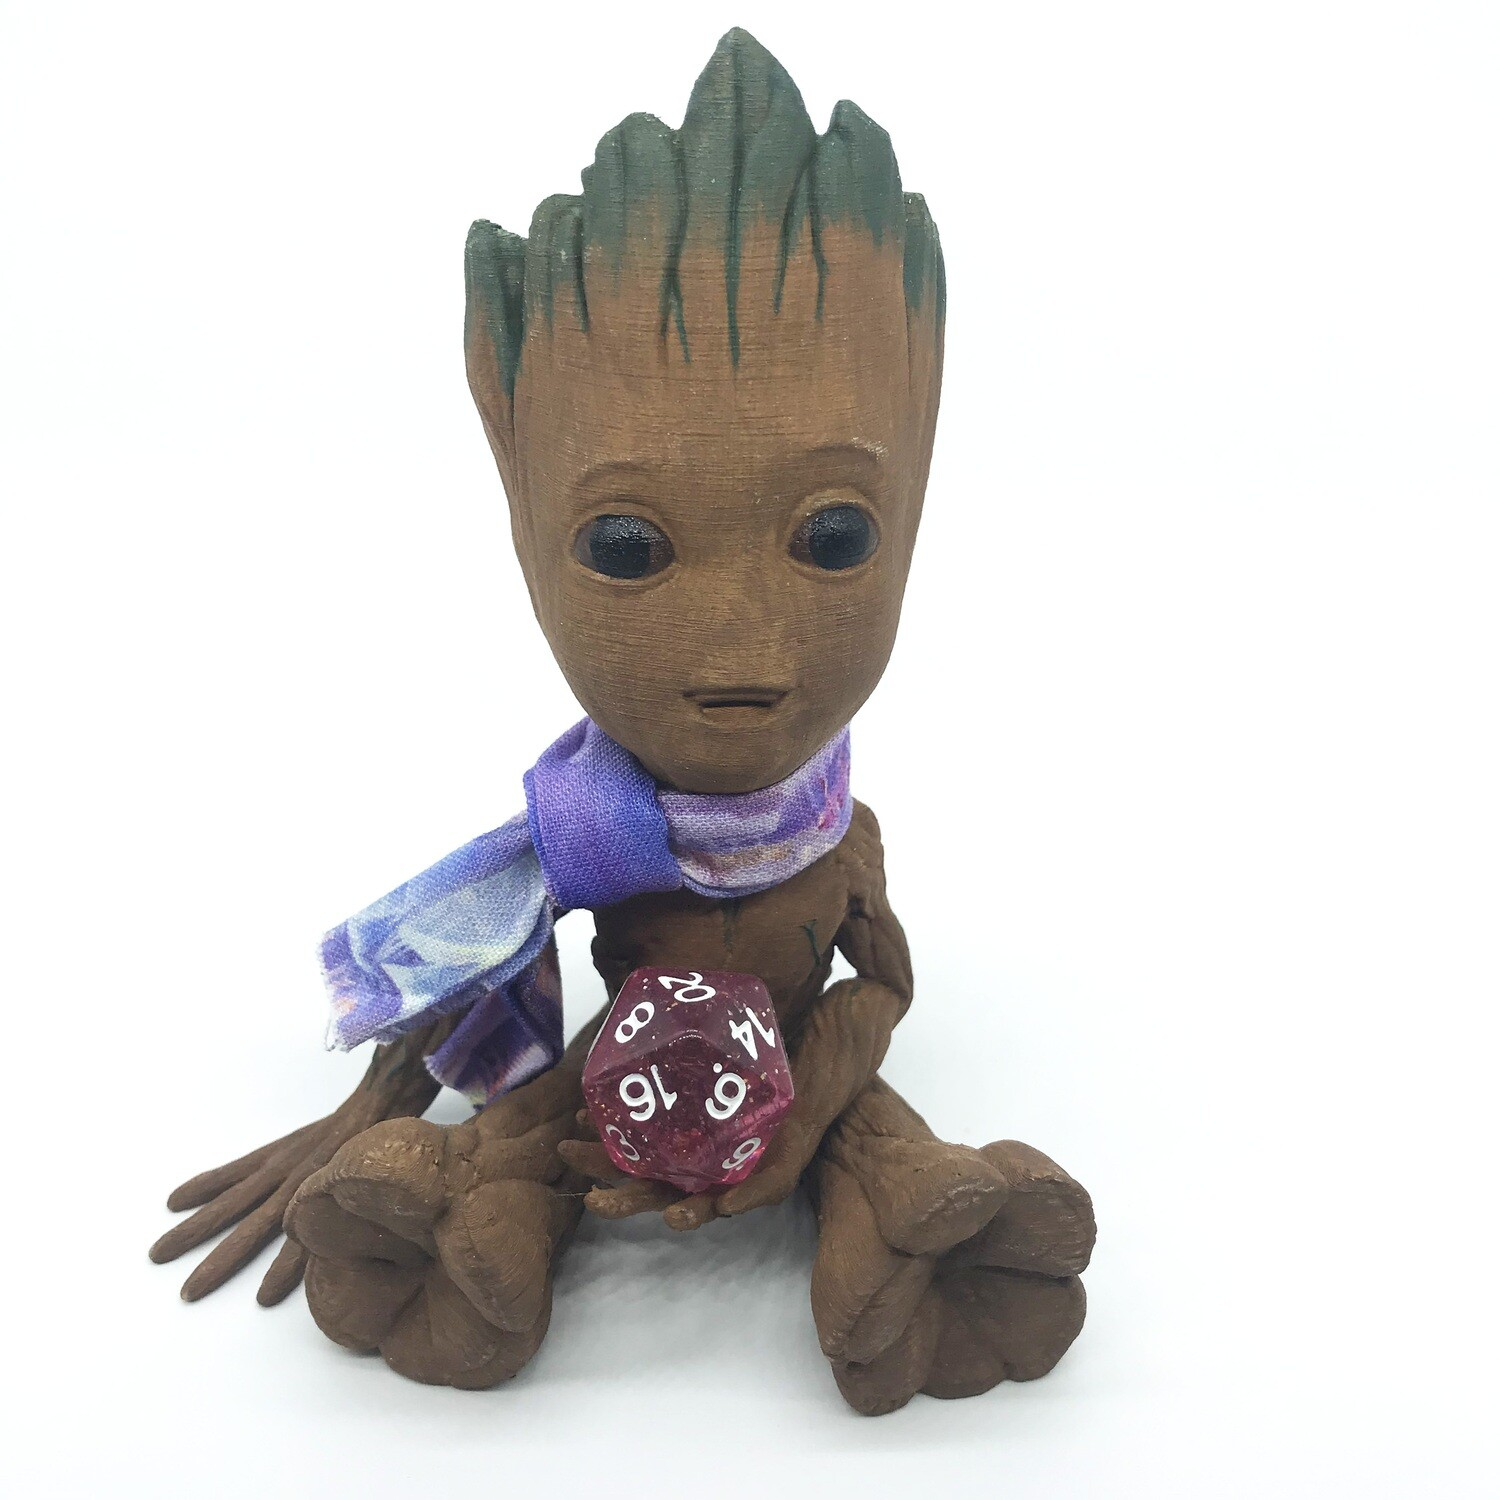 Cute & Happy Tree planter holding clear D20 with scarf